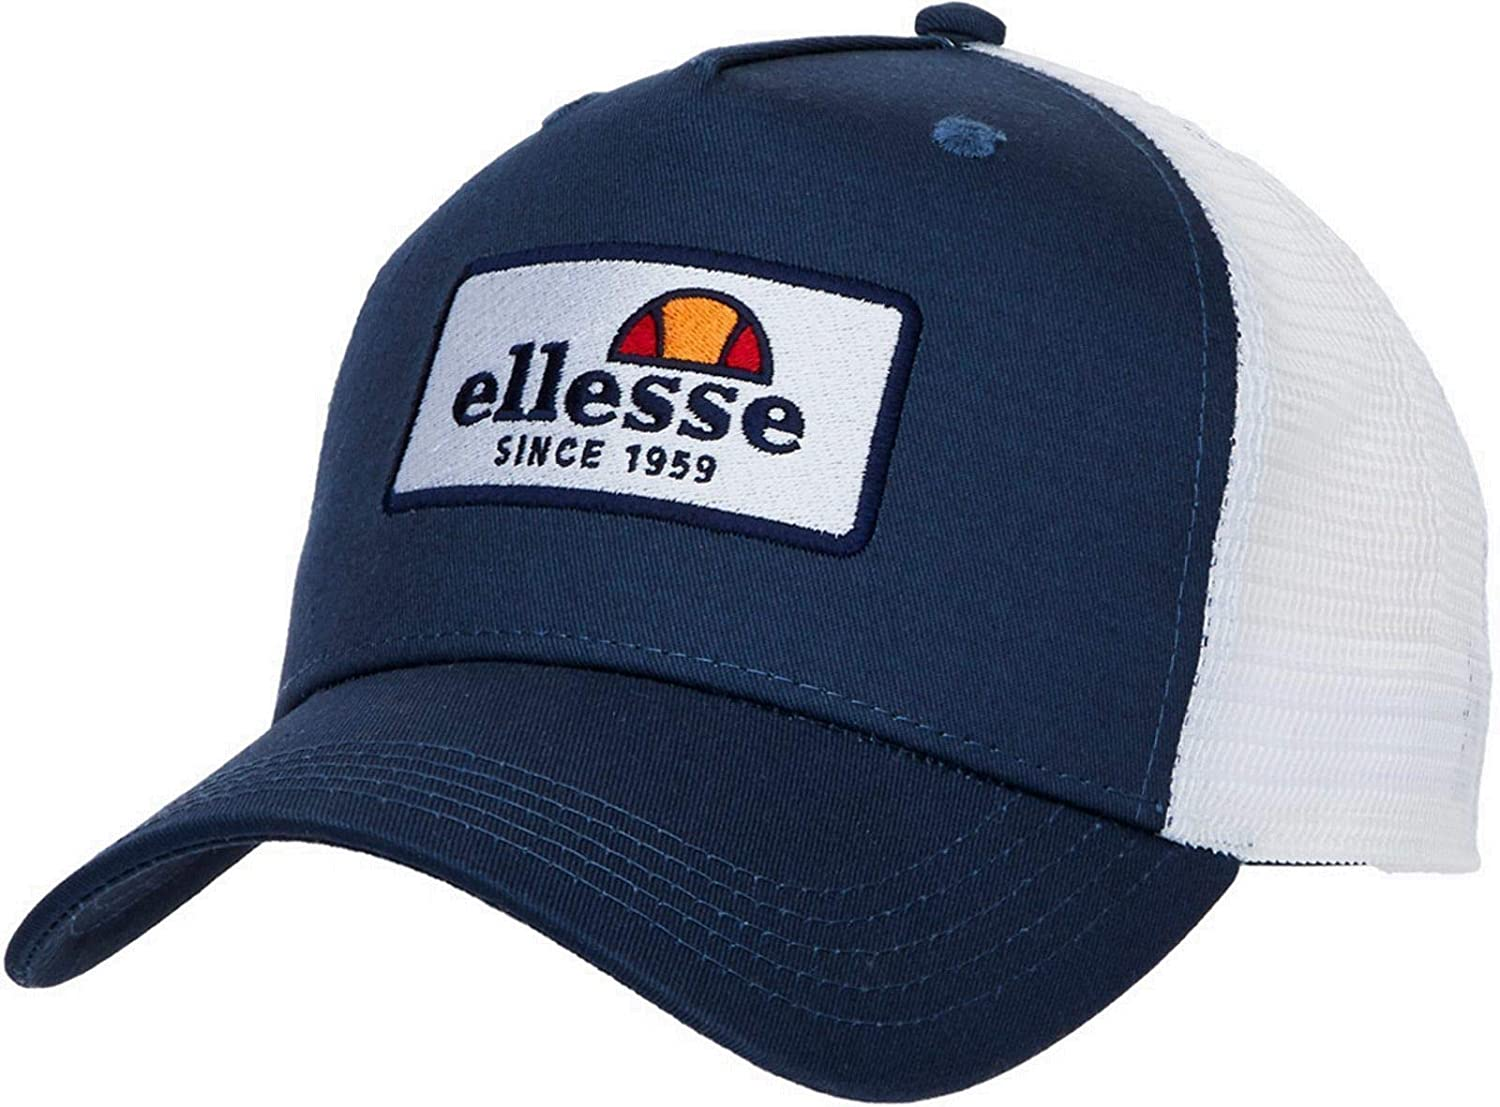 141e961b29c67f ellesse Hemmy Mesh Trucker Baseball Cap Navy: Amazon.co.uk: Clothing